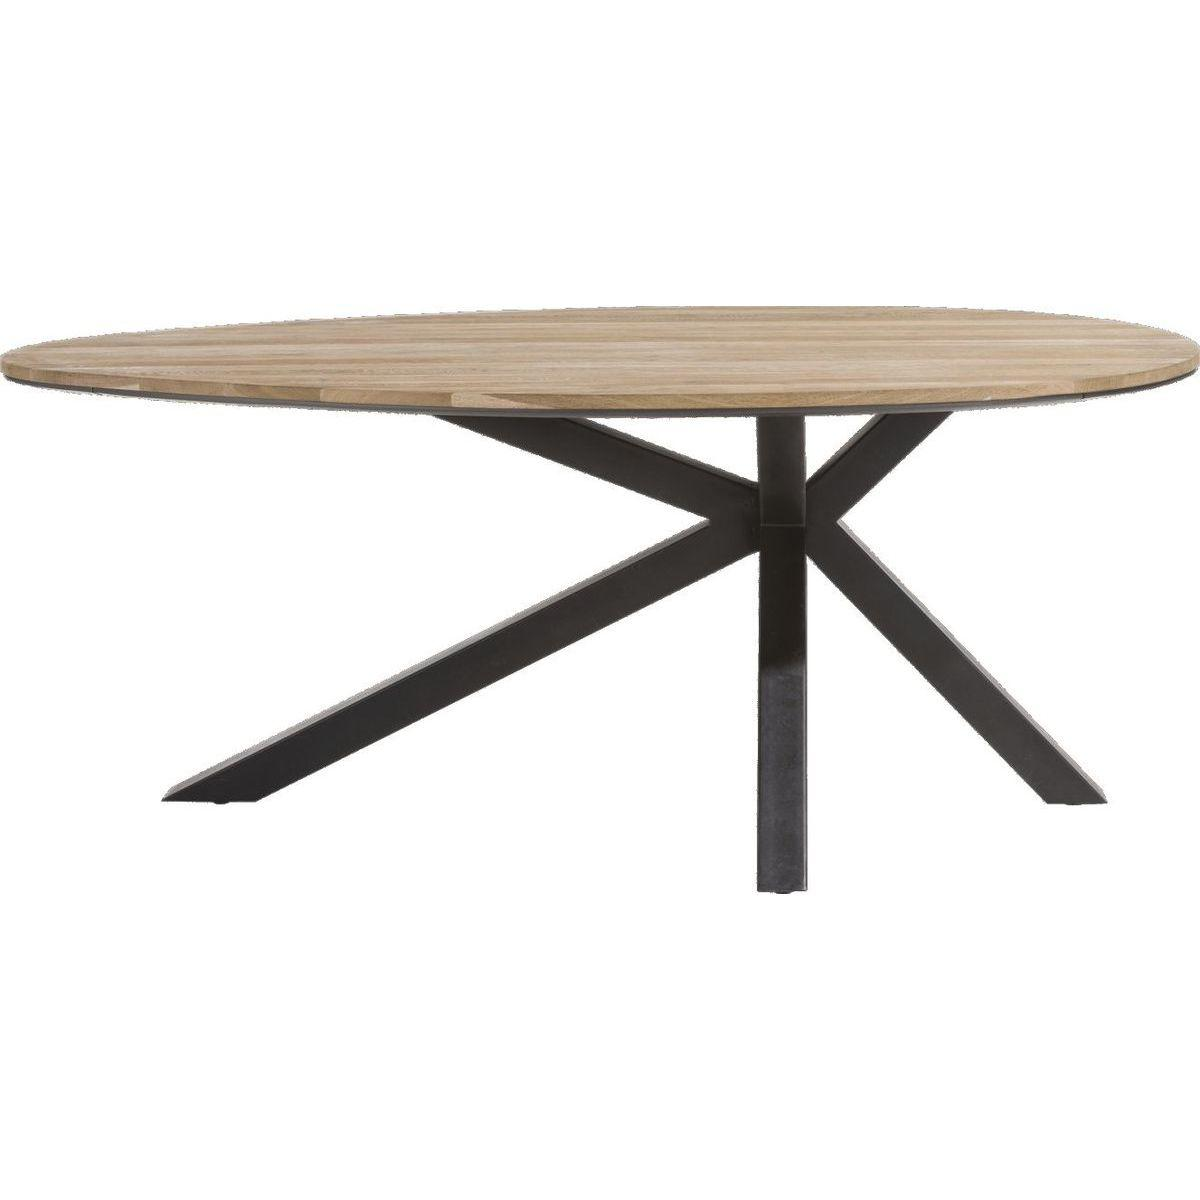 Table ovale COLOMBO Xooon Chêne railway brown 200x120cm